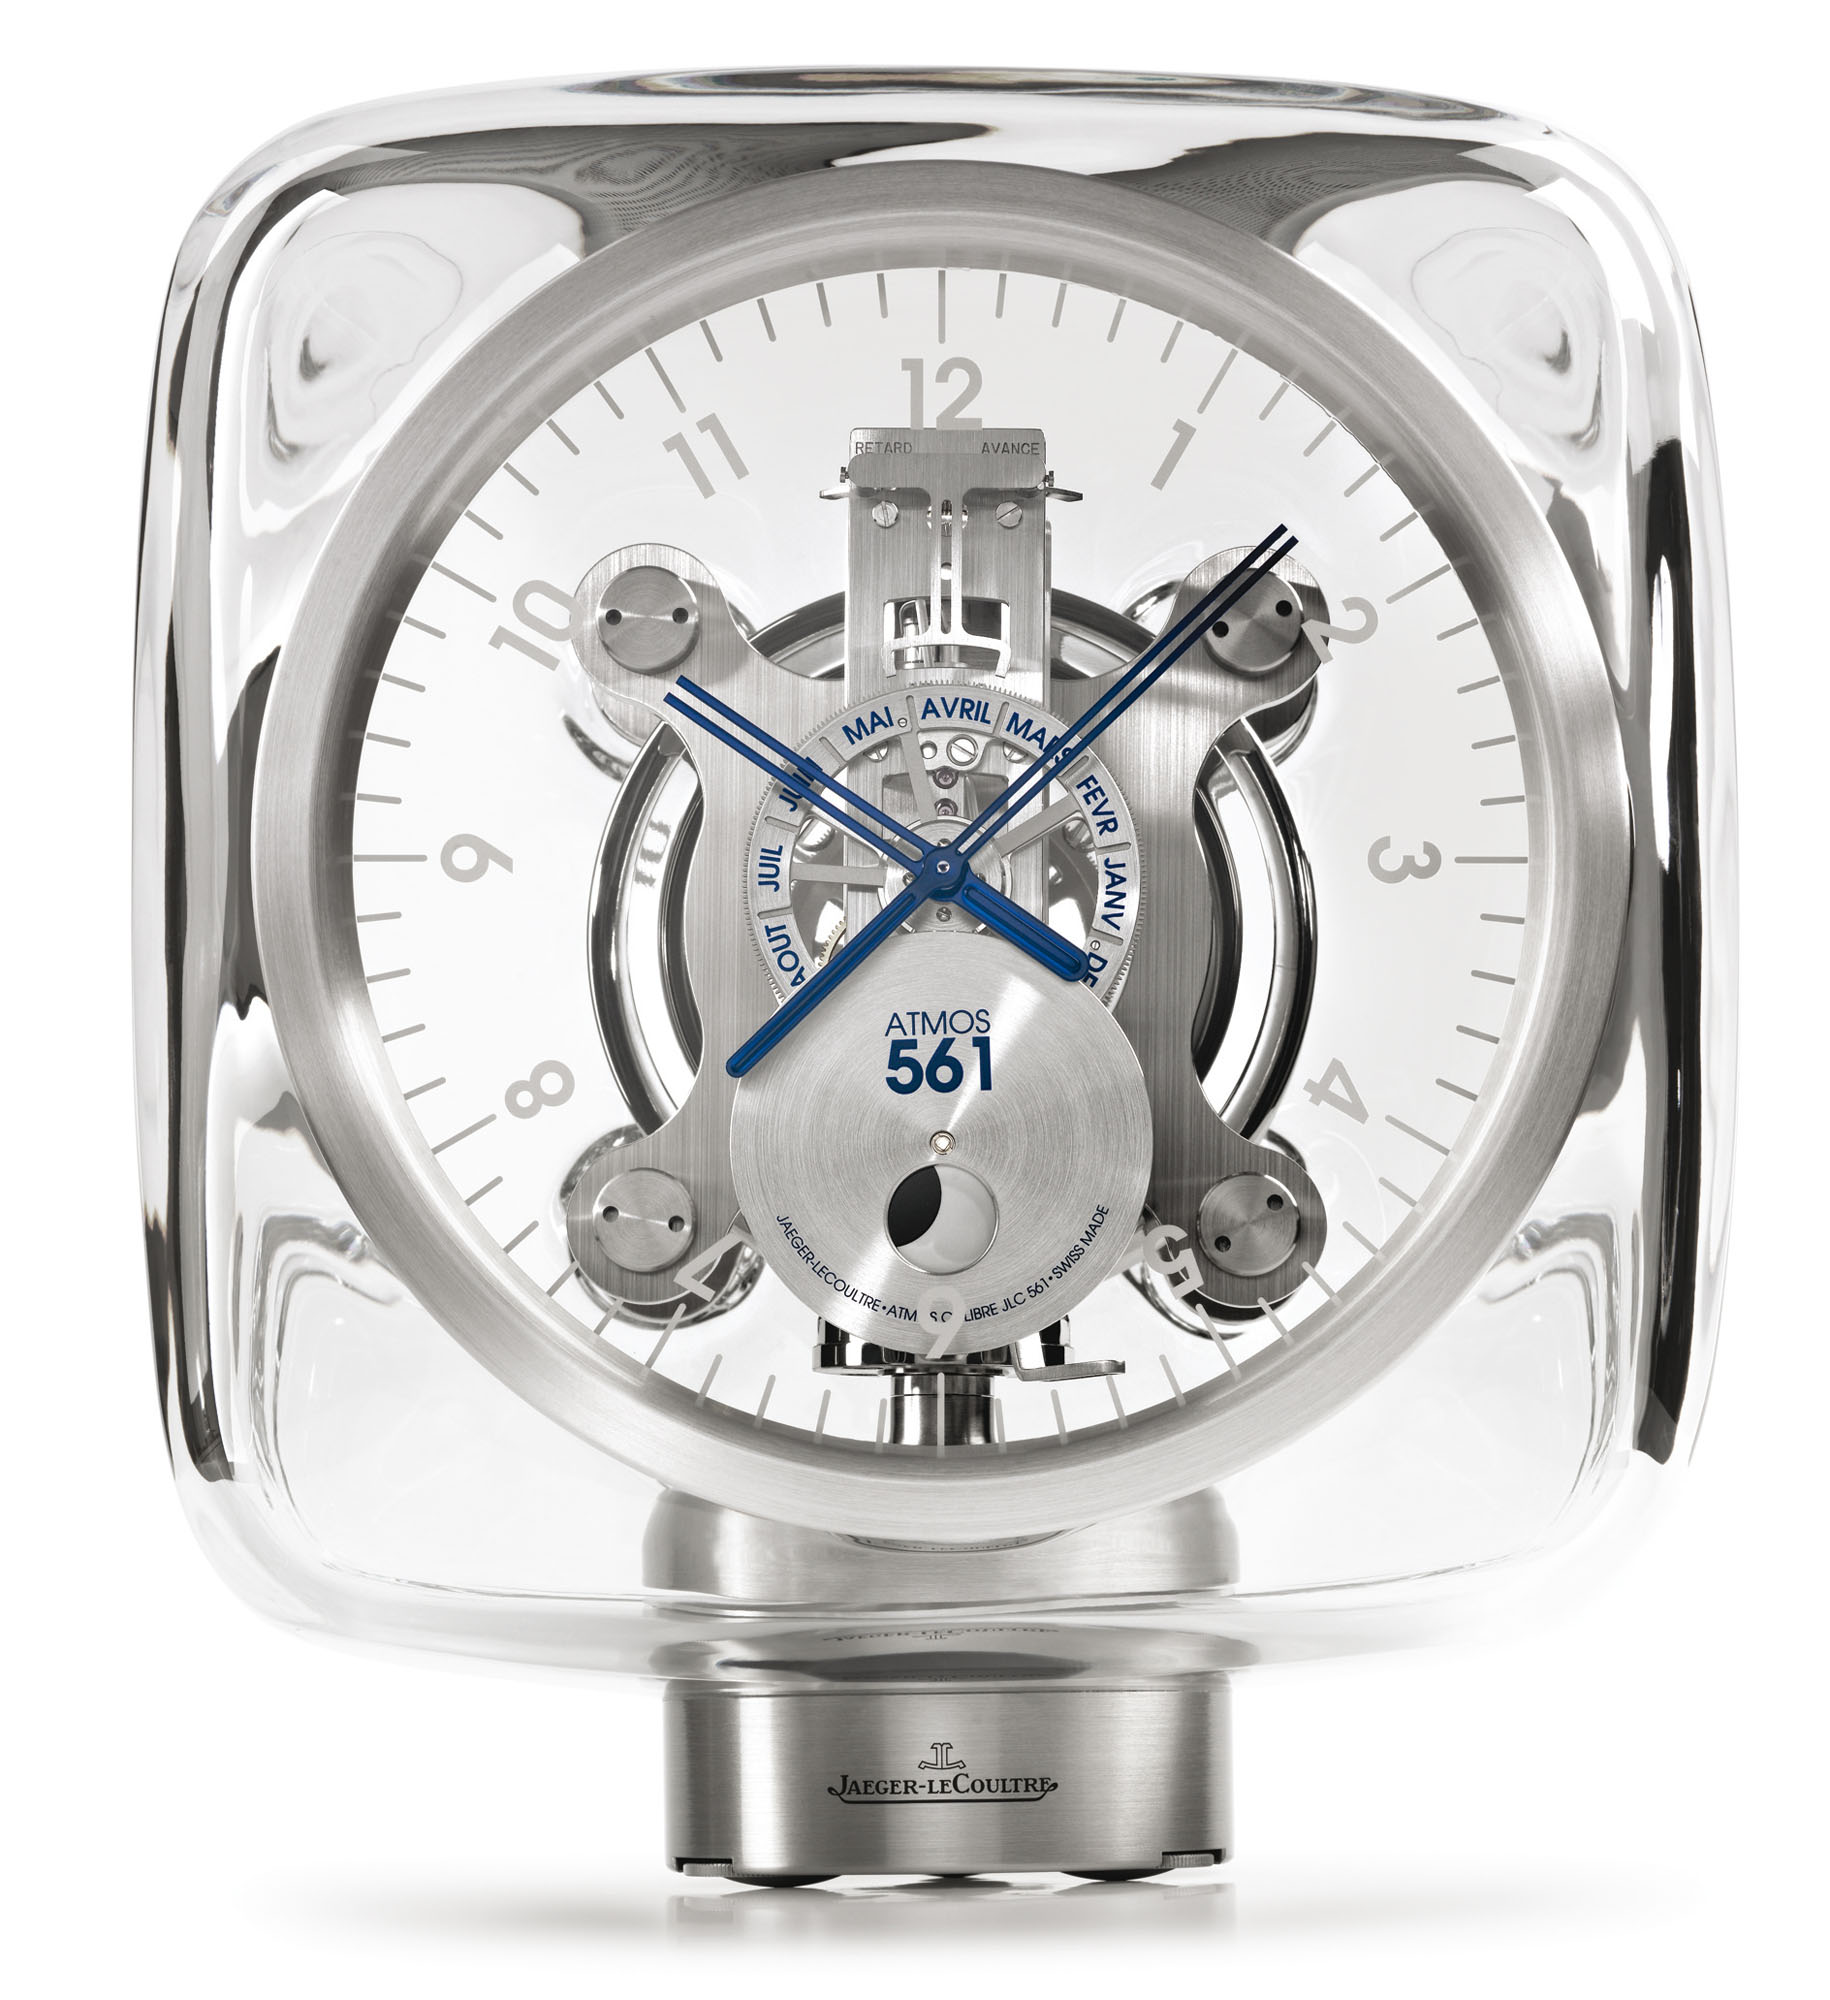 Jaeger-LeCoultre Atmos 561 by Marc Newson